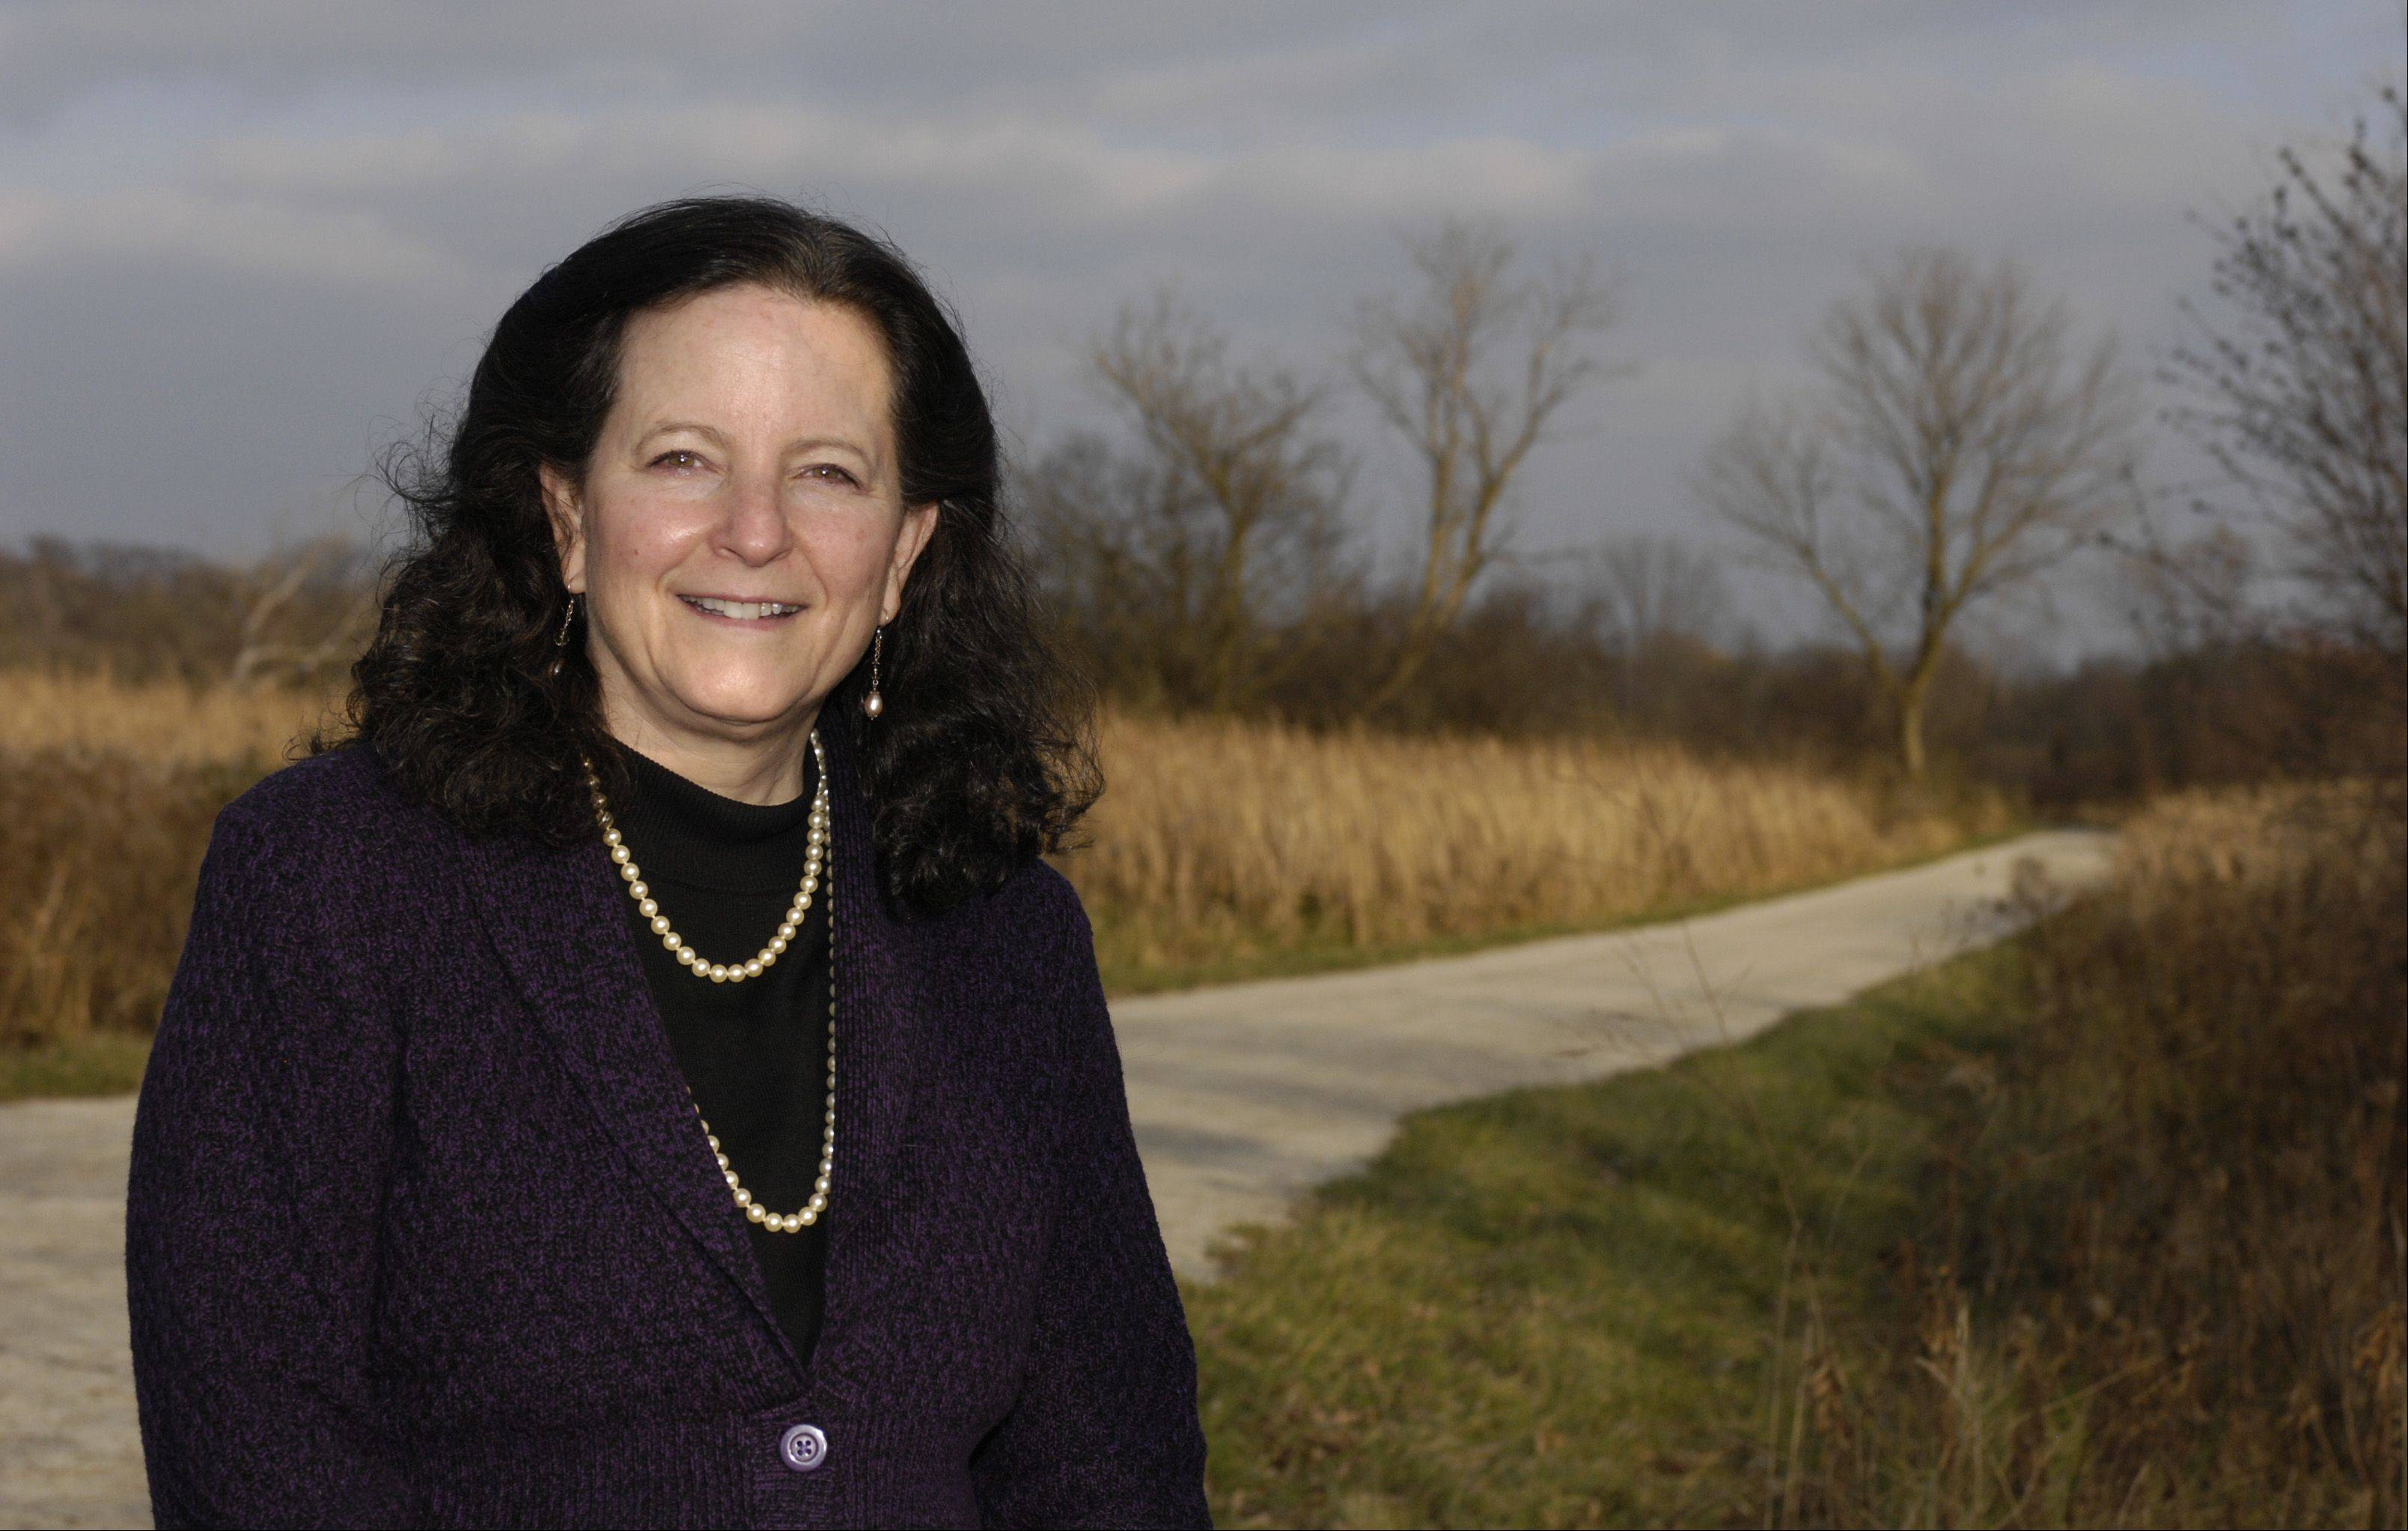 New DuPage Forest Preserve Commissioner Shannon Burns is the first Democrat to serve on the panel since the commission split from the DuPage County Board.